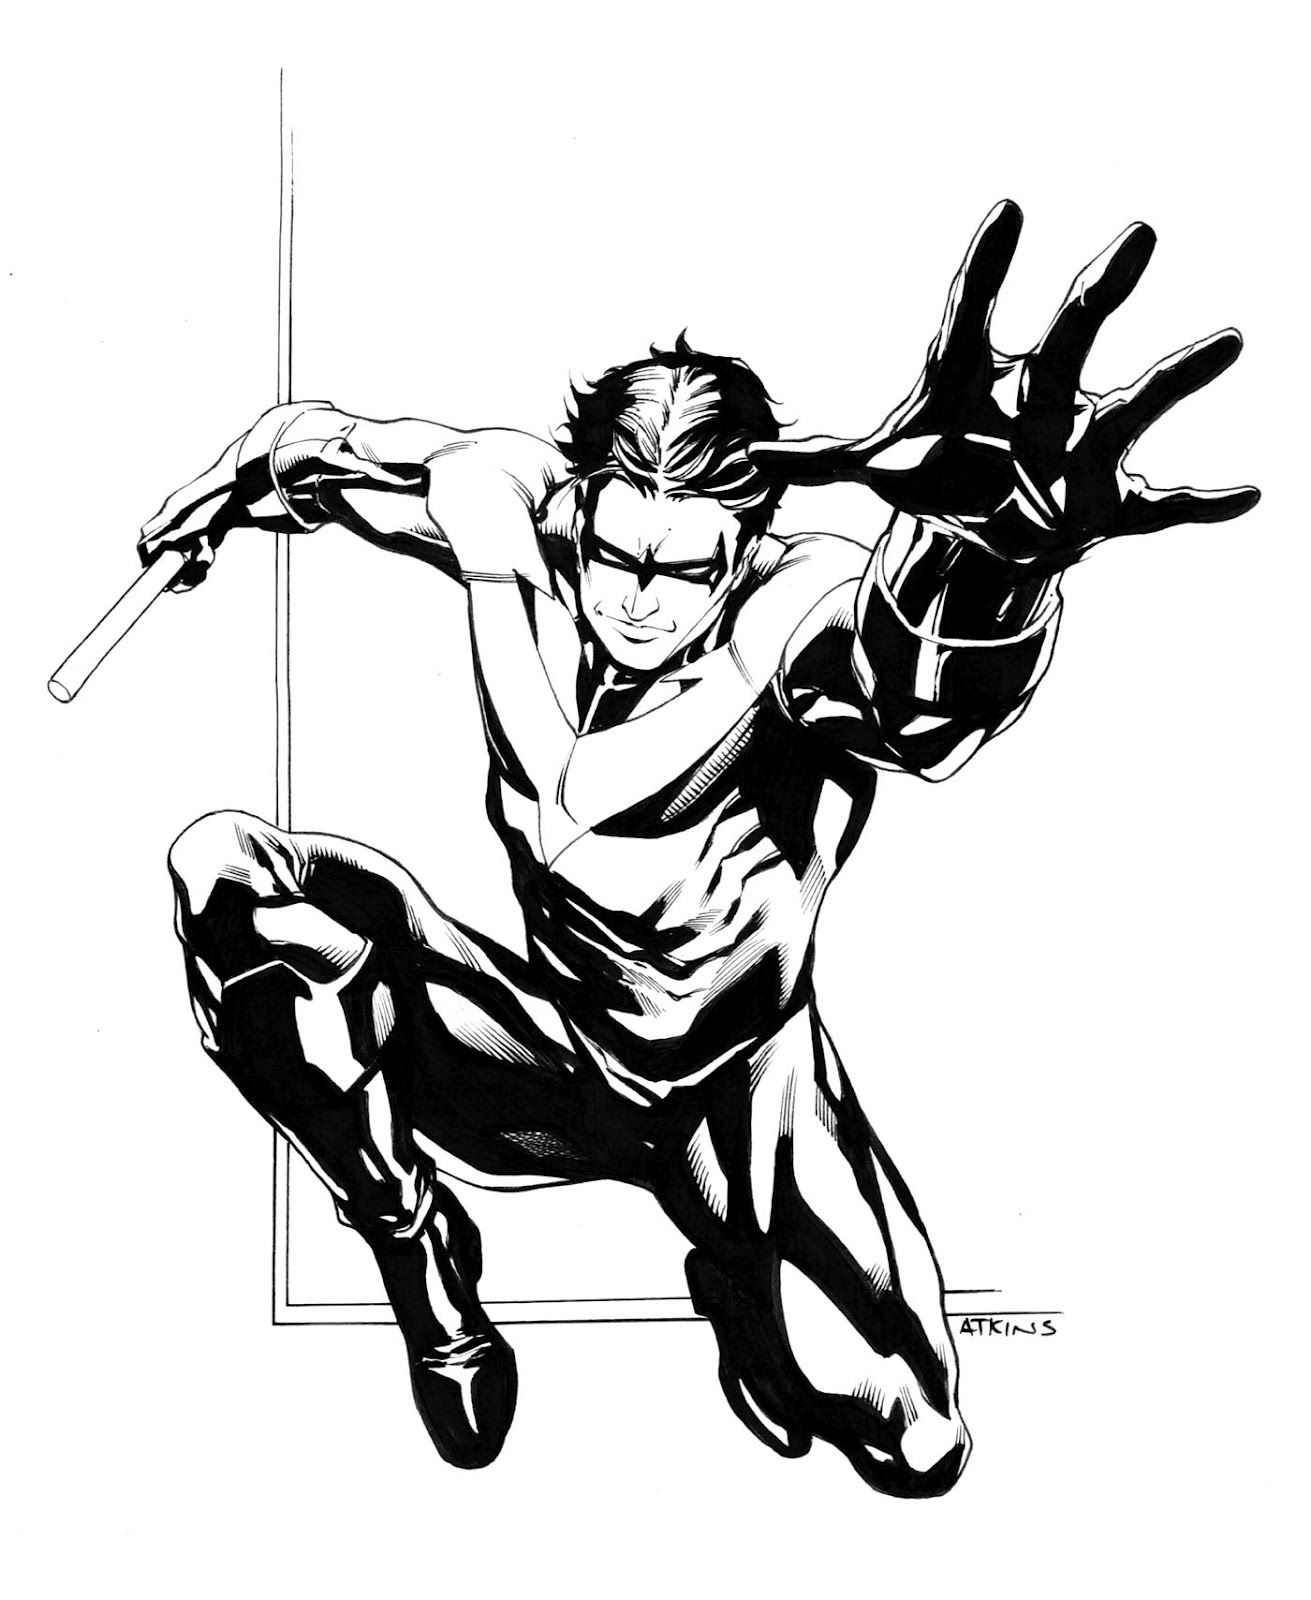 Free Nightwing Coloring Pages Jpg 1311 1600 Drawing Superheroes Nightwing Coloring Pages